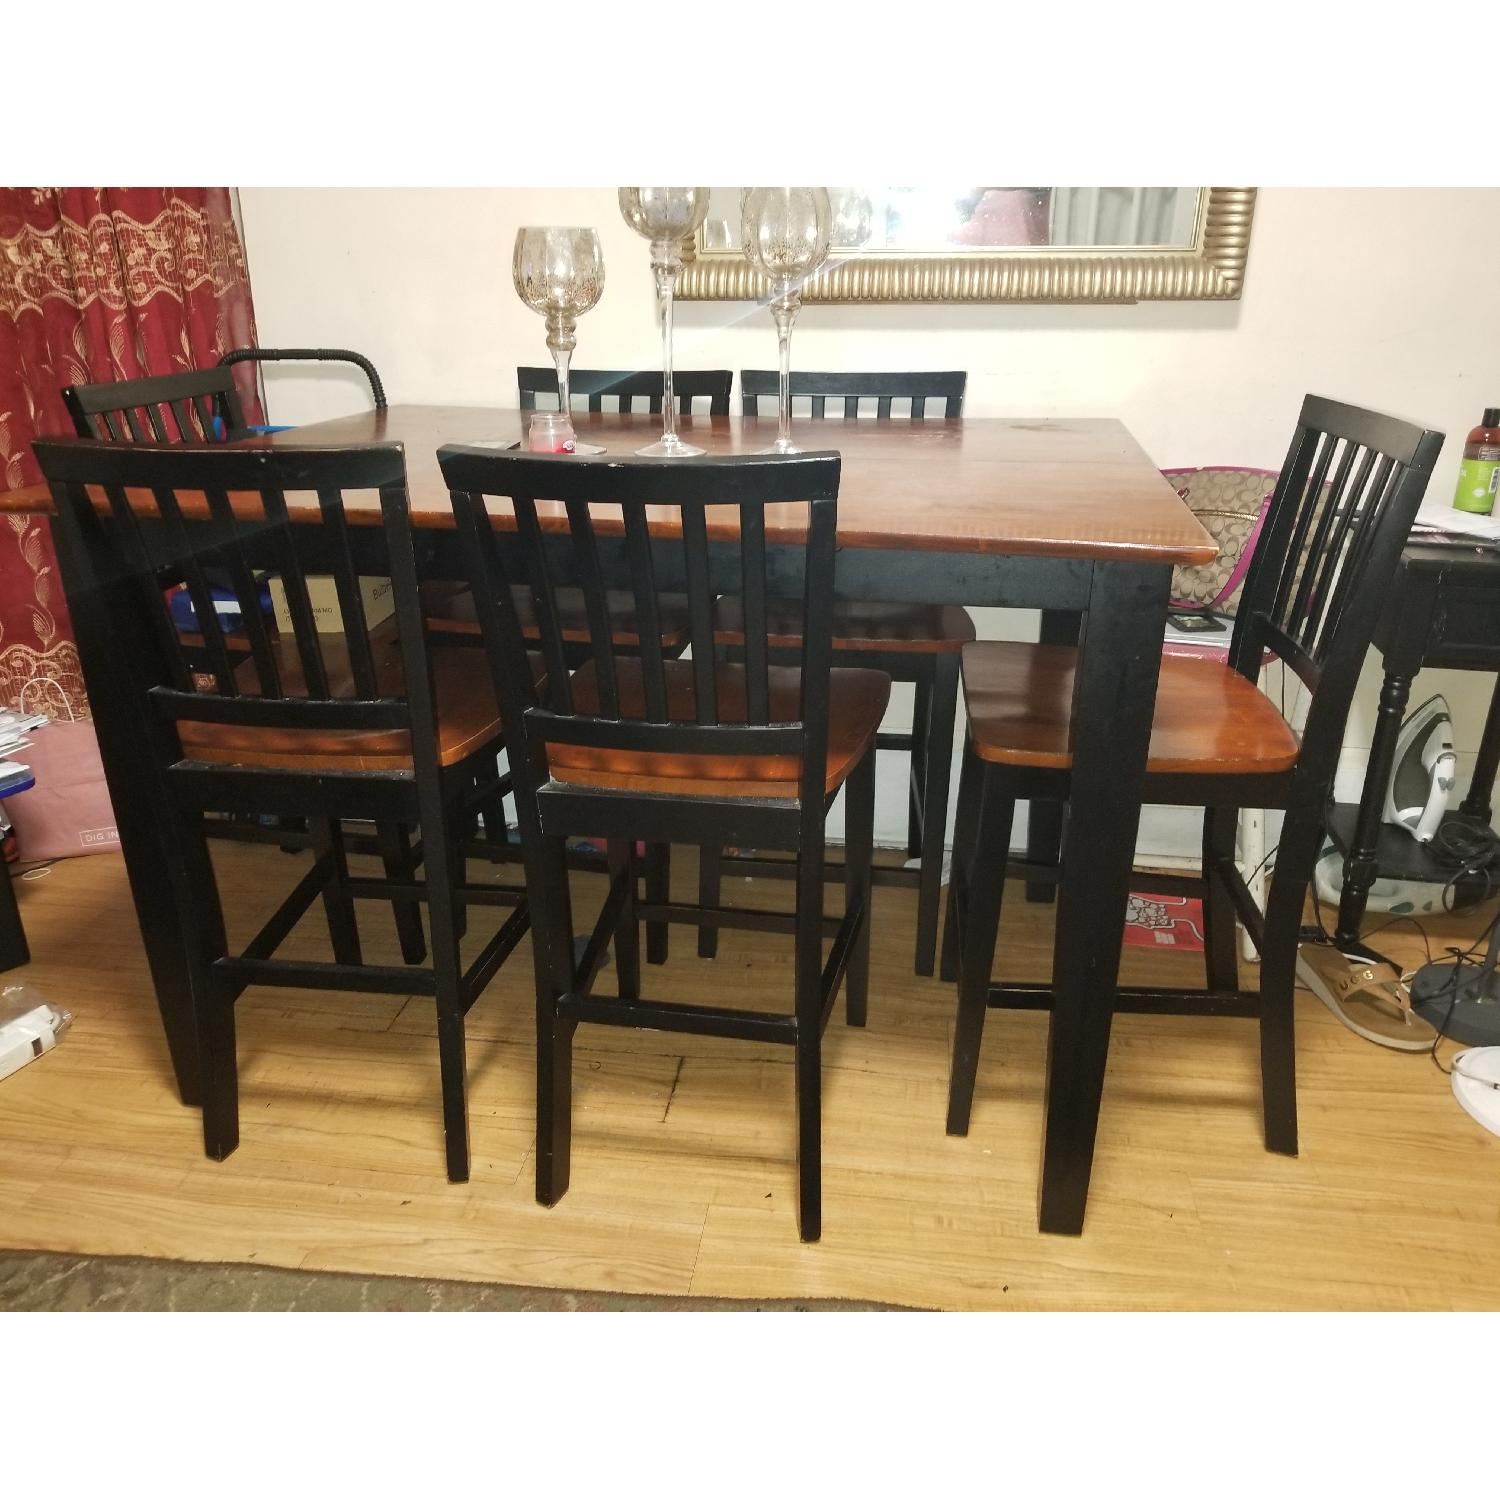 Bob's Montibello Dining Table w/ 6 Chairs - image-2